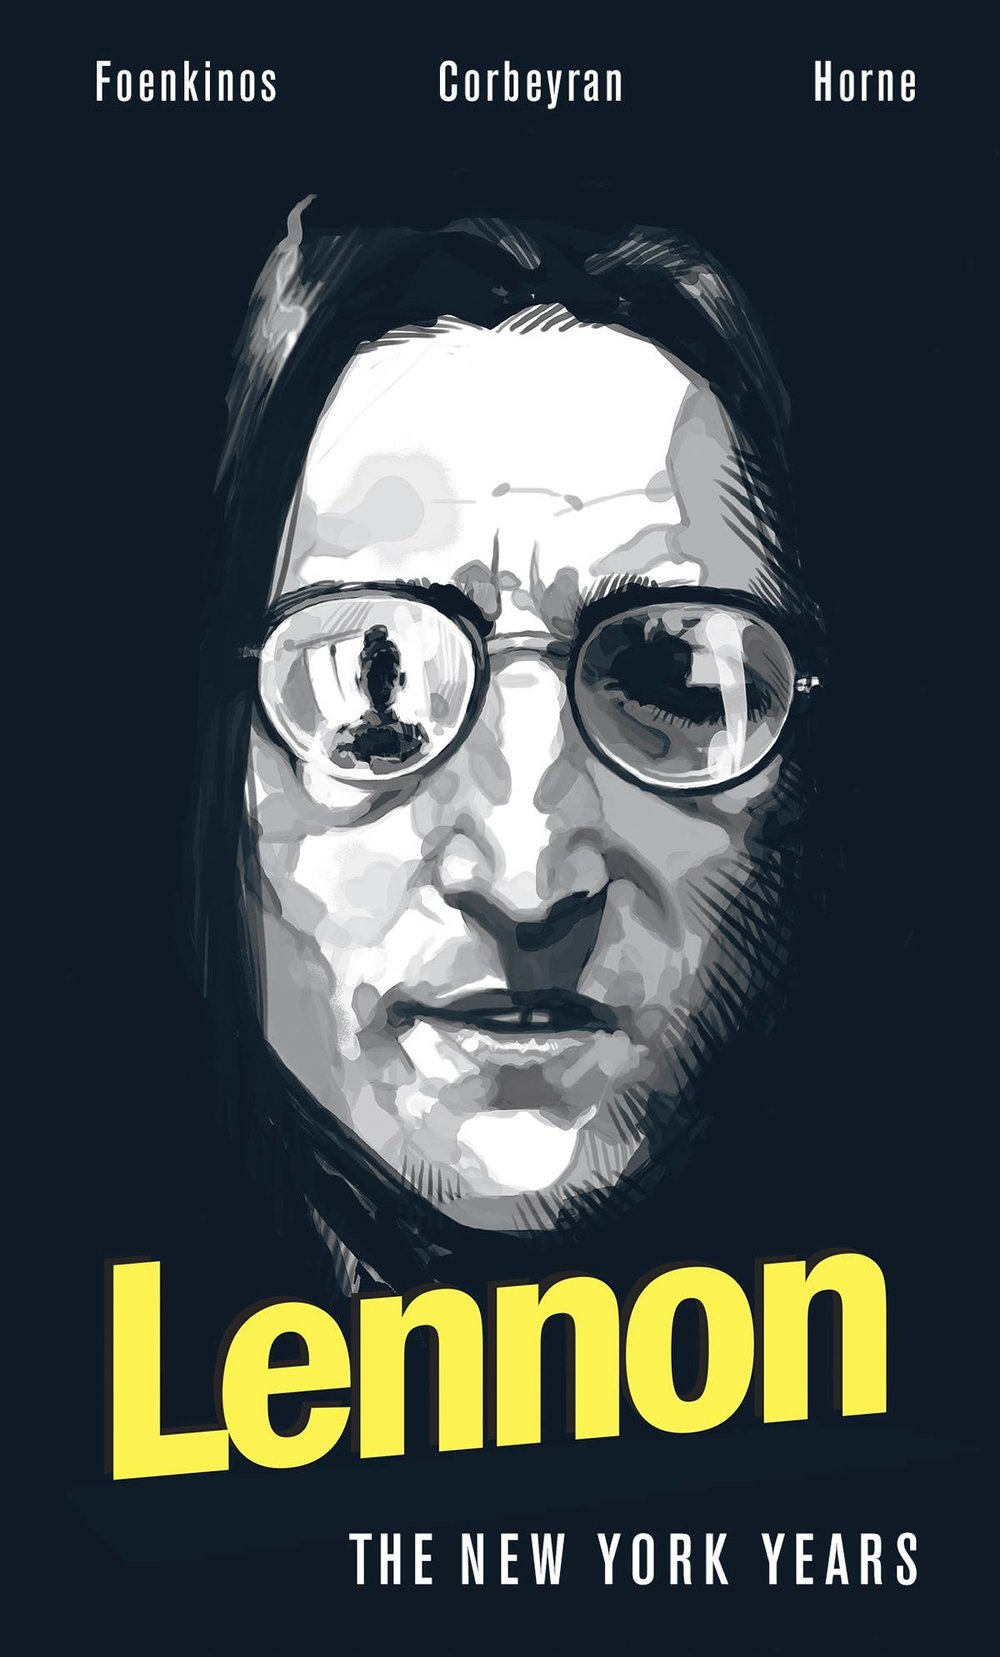 LENNON THE NEW YORK YEARS HC.jpg